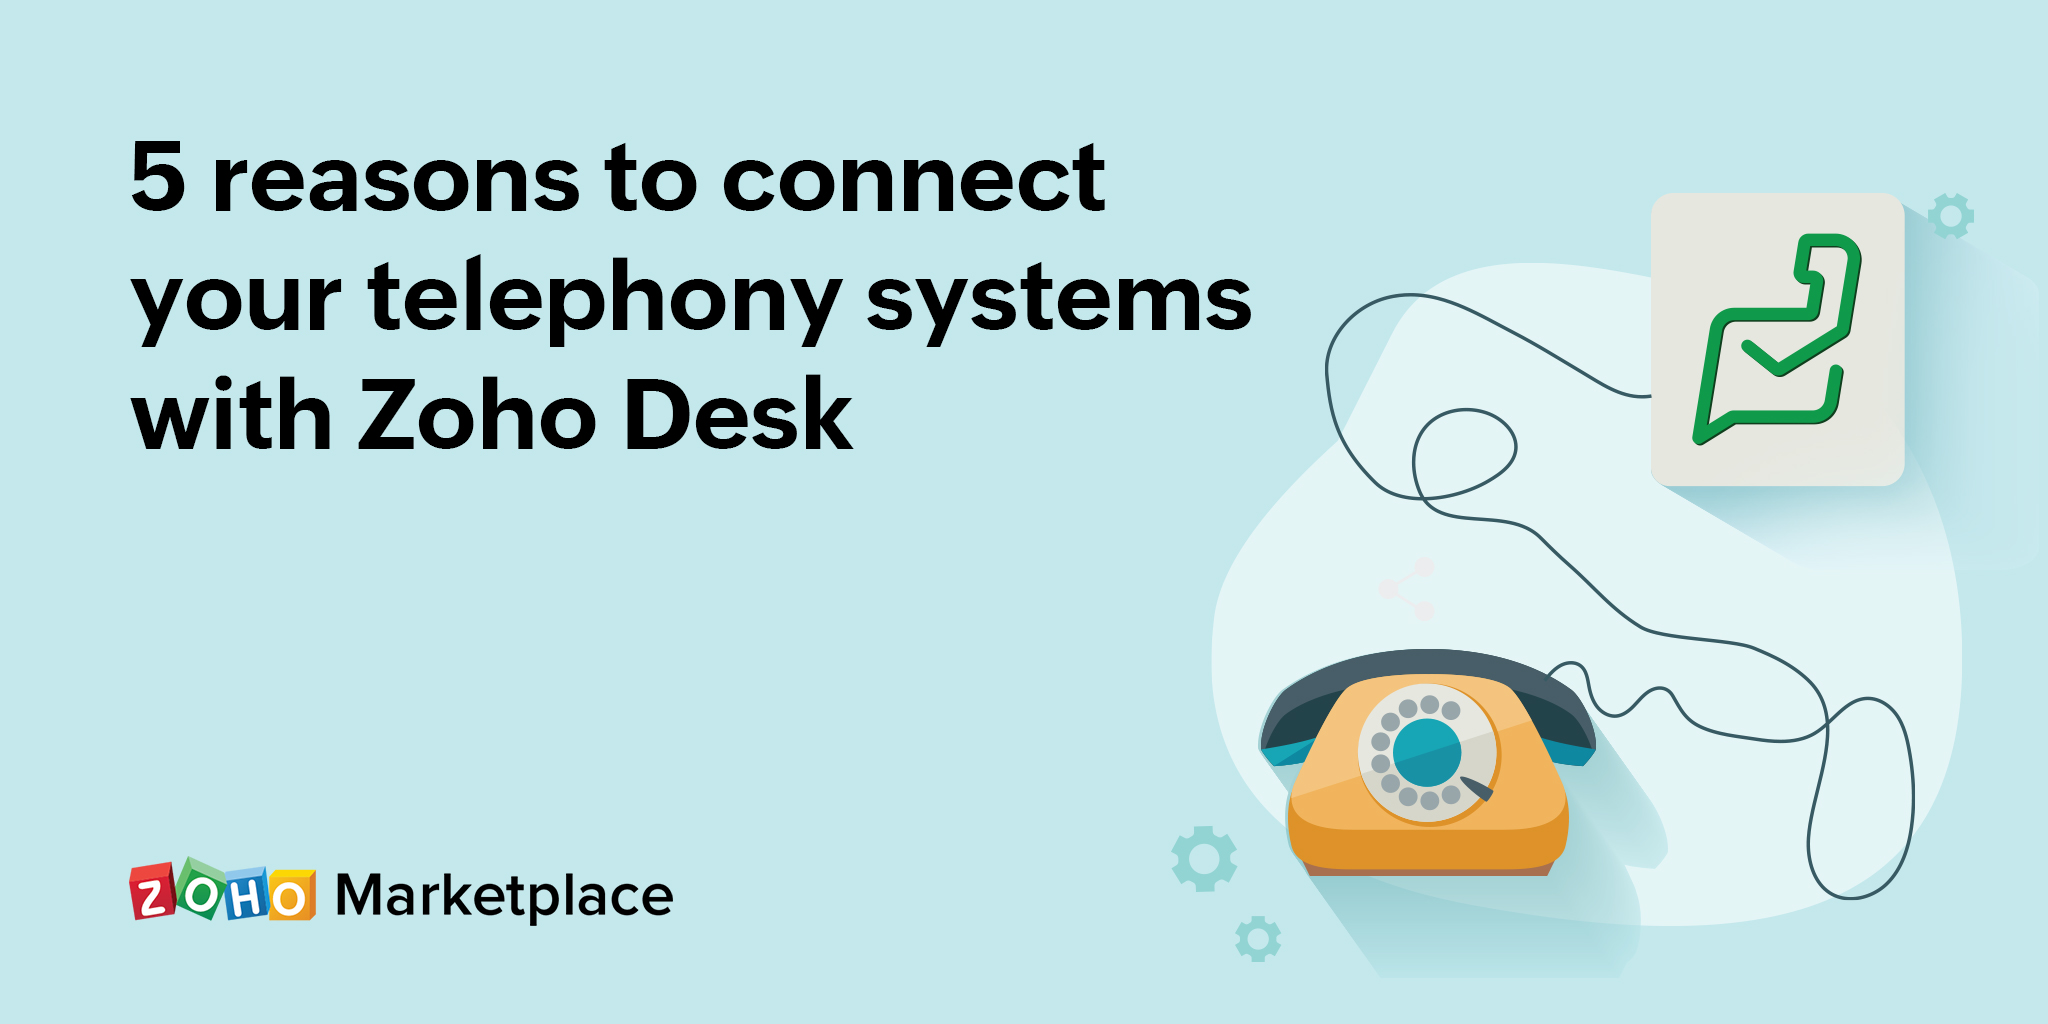 5 reasons to connect your telephony systems with Zoho Desk